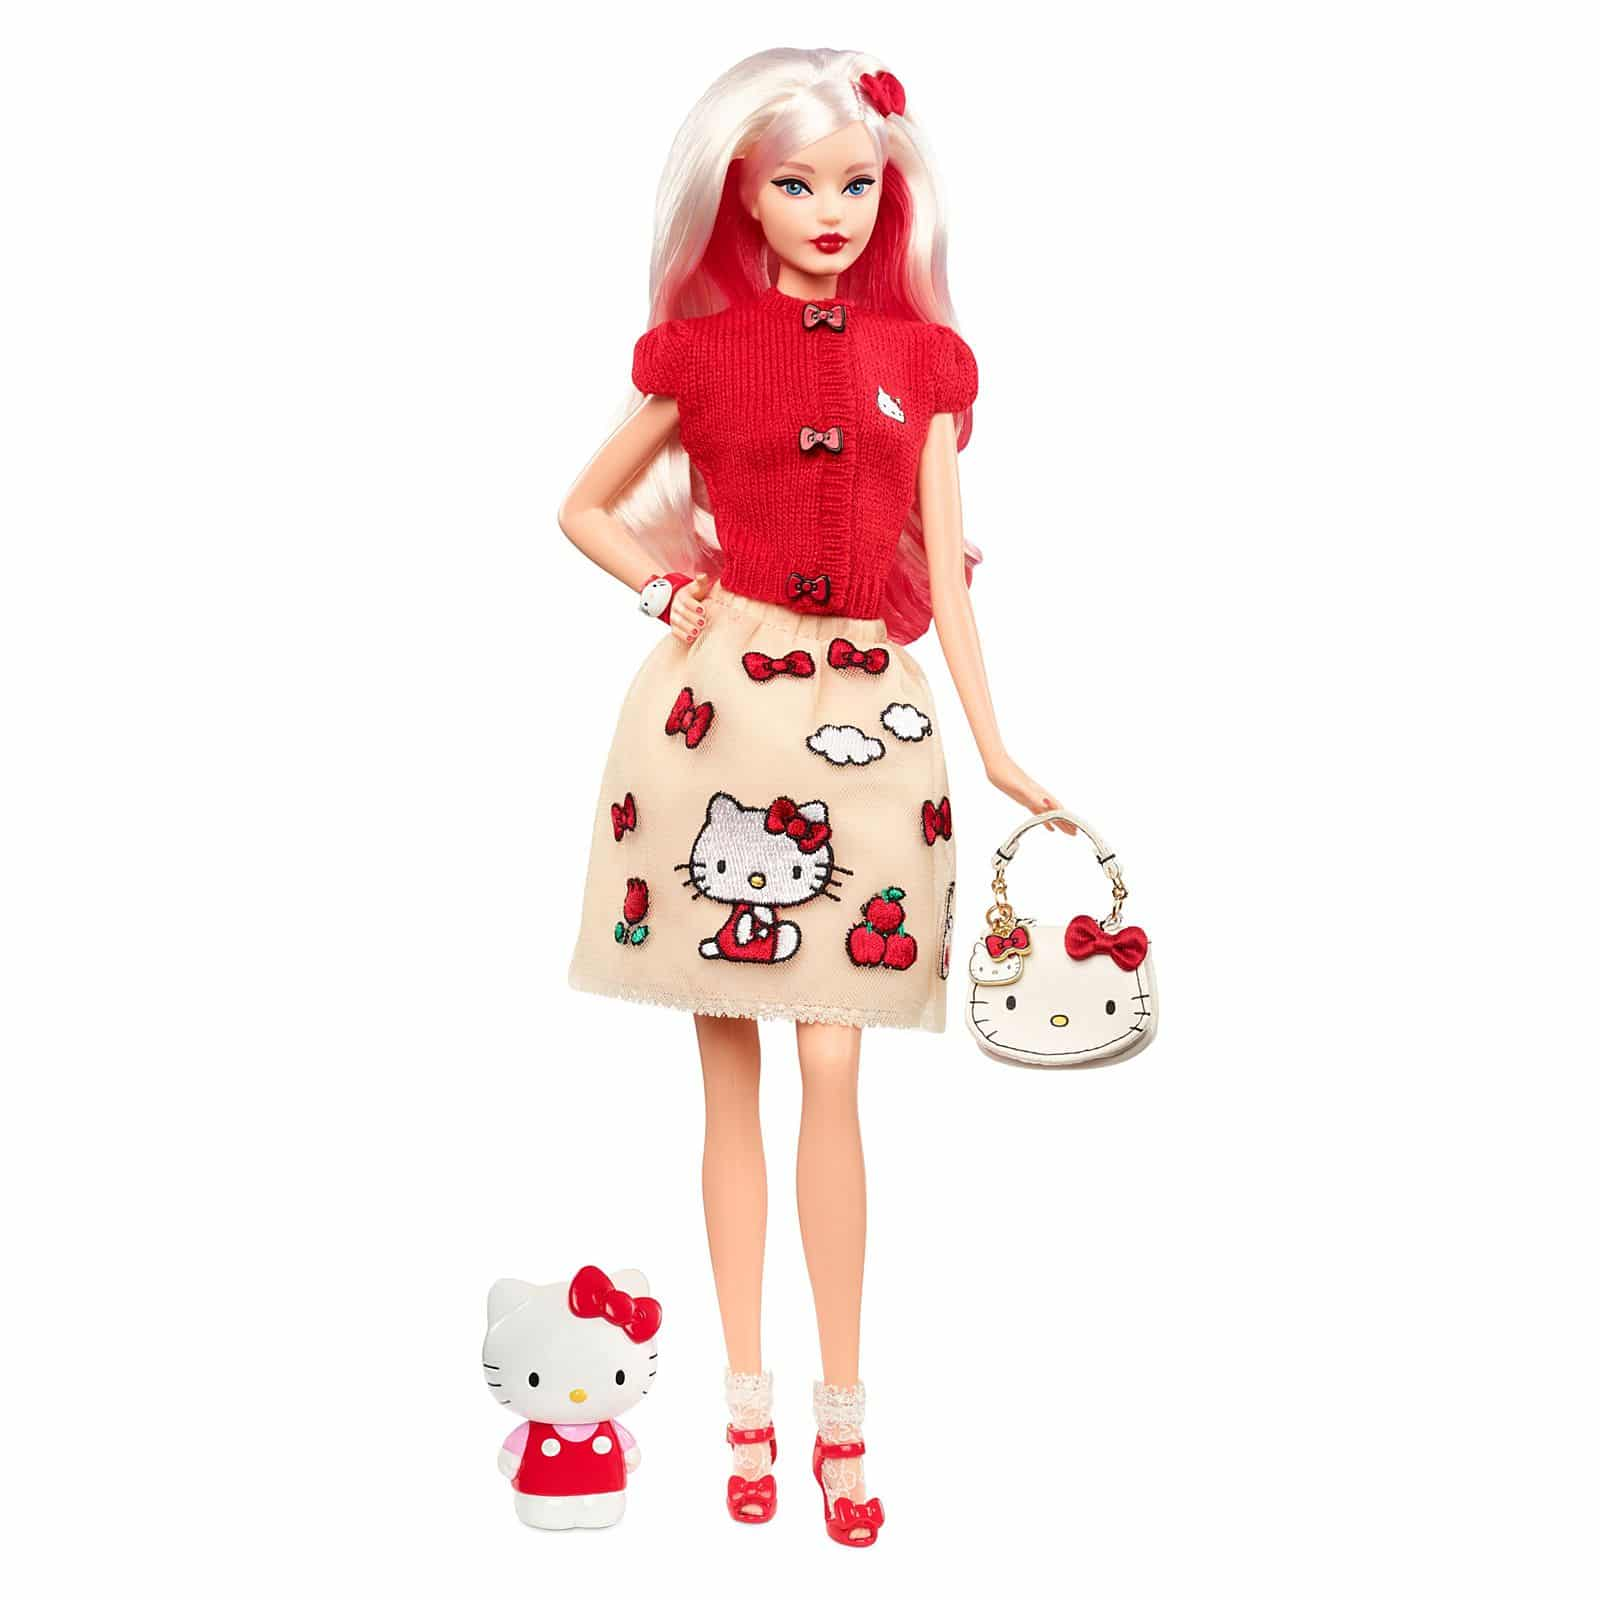 be2e00804 Barbie Collector Hello Kitty Doll | Samko's Toy Store